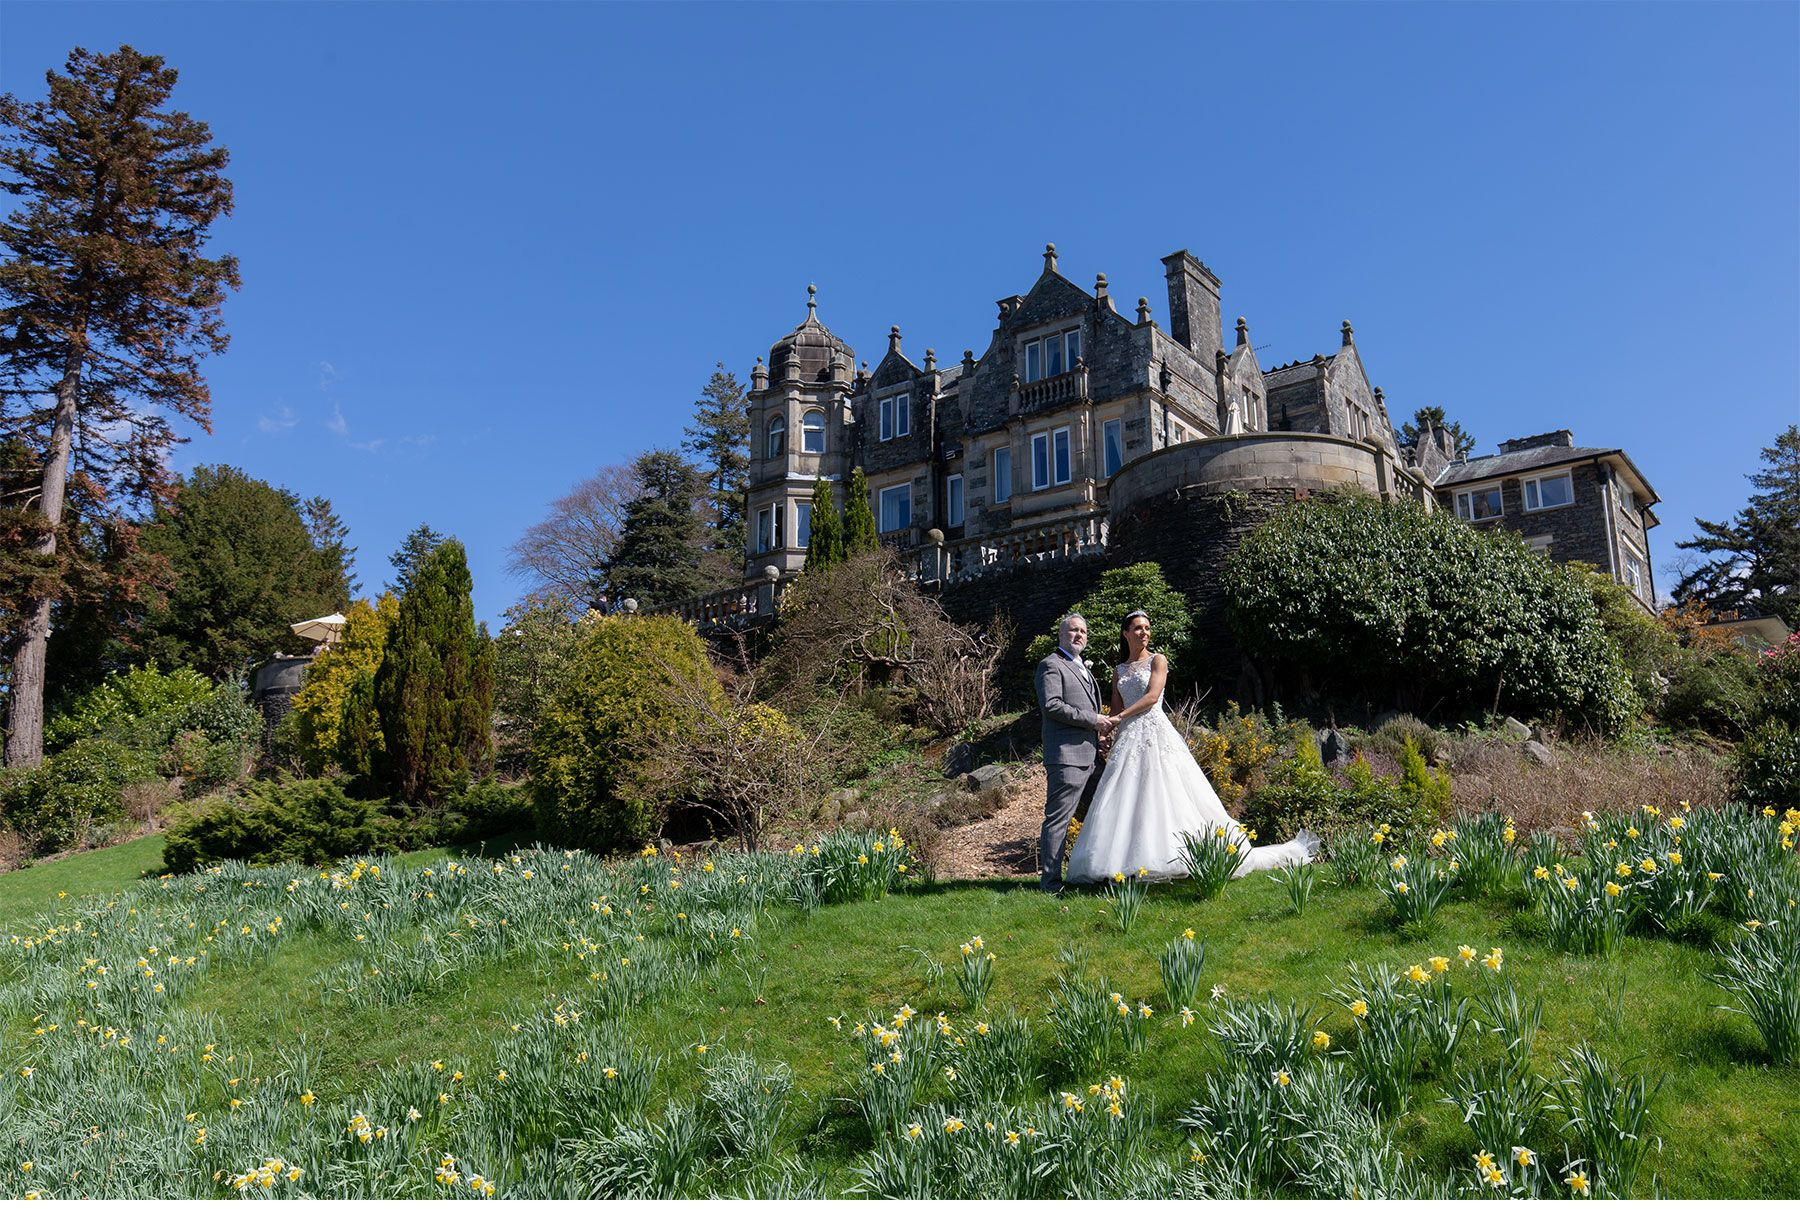 The bride and groom below the wonderful building of the Langdale Chase Hotel